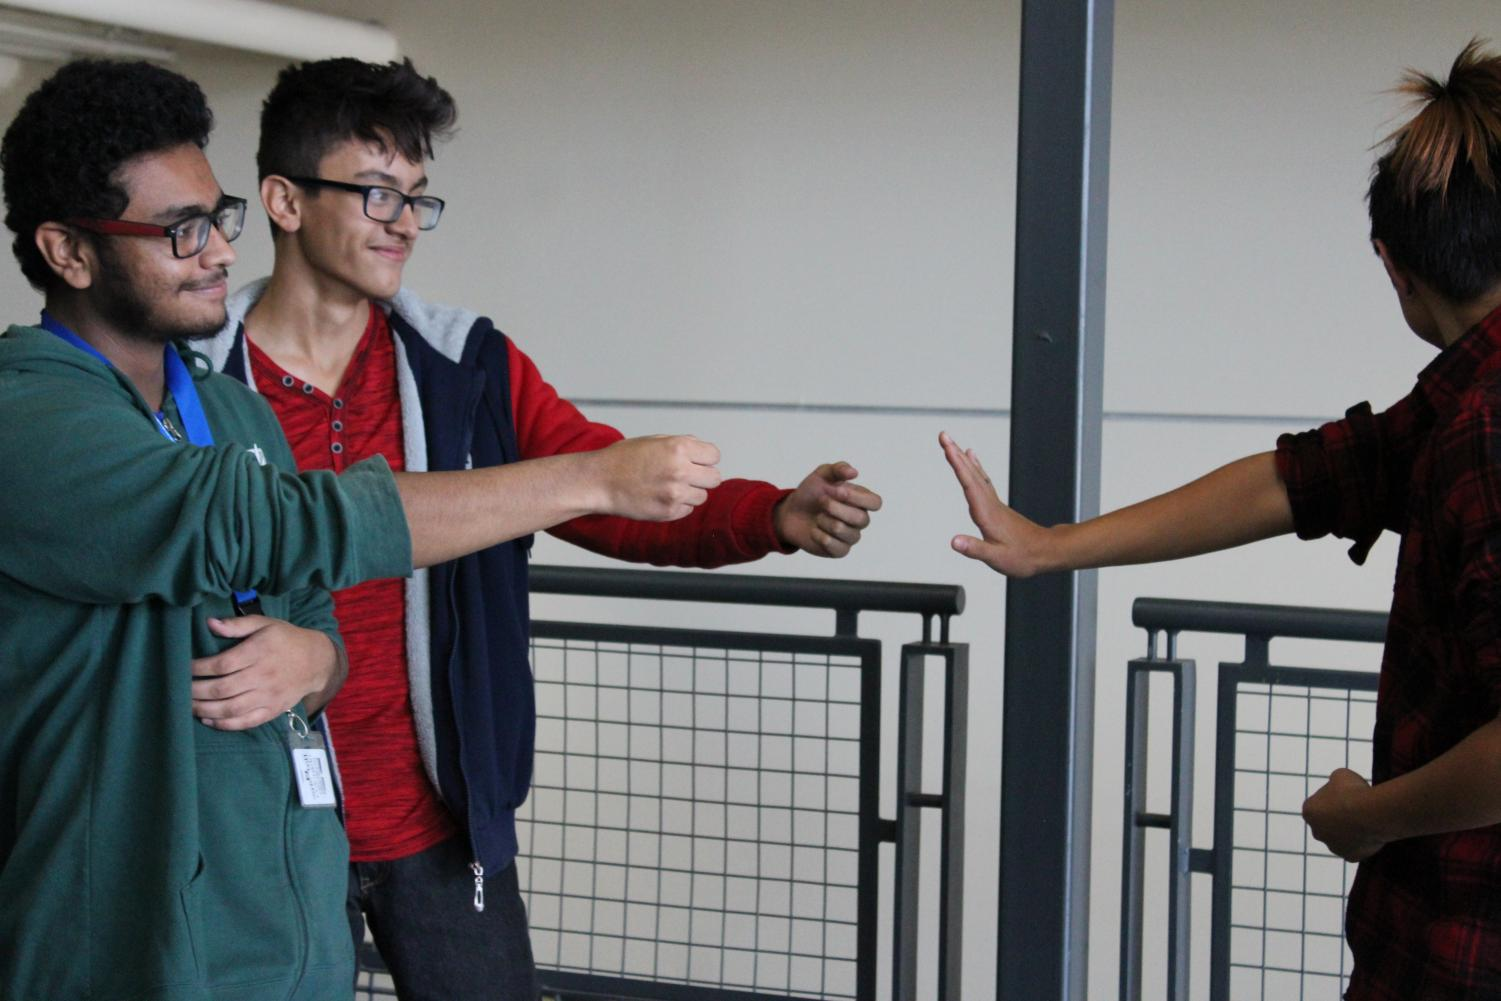 Students act out a scene of bullying in a school setting.